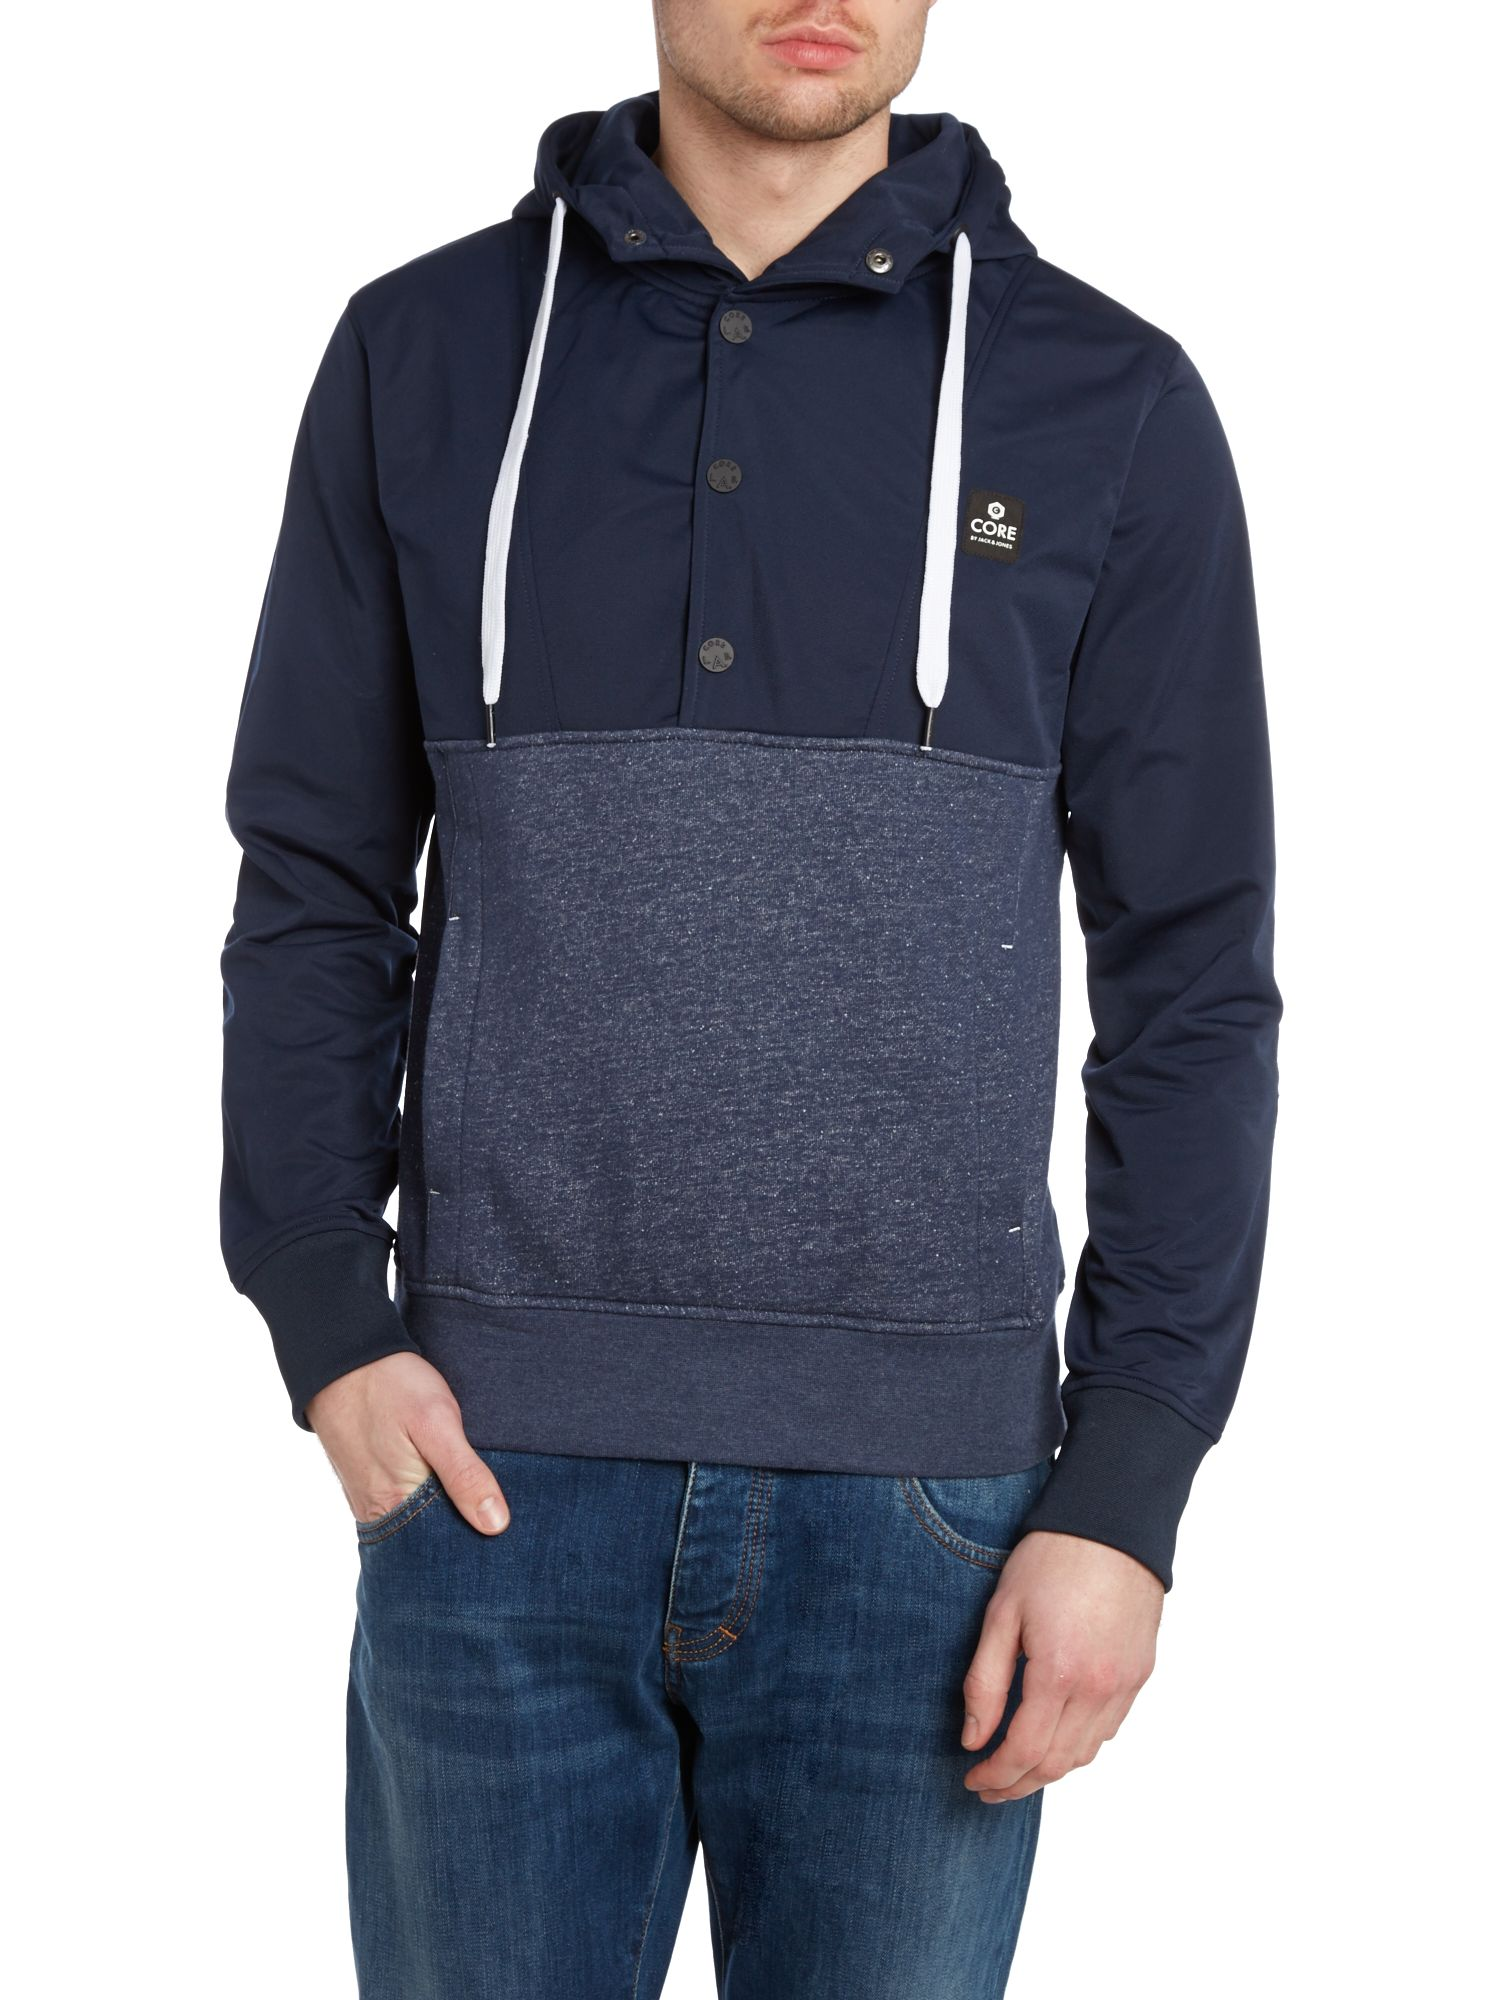 Nylon hooded sweatshirt